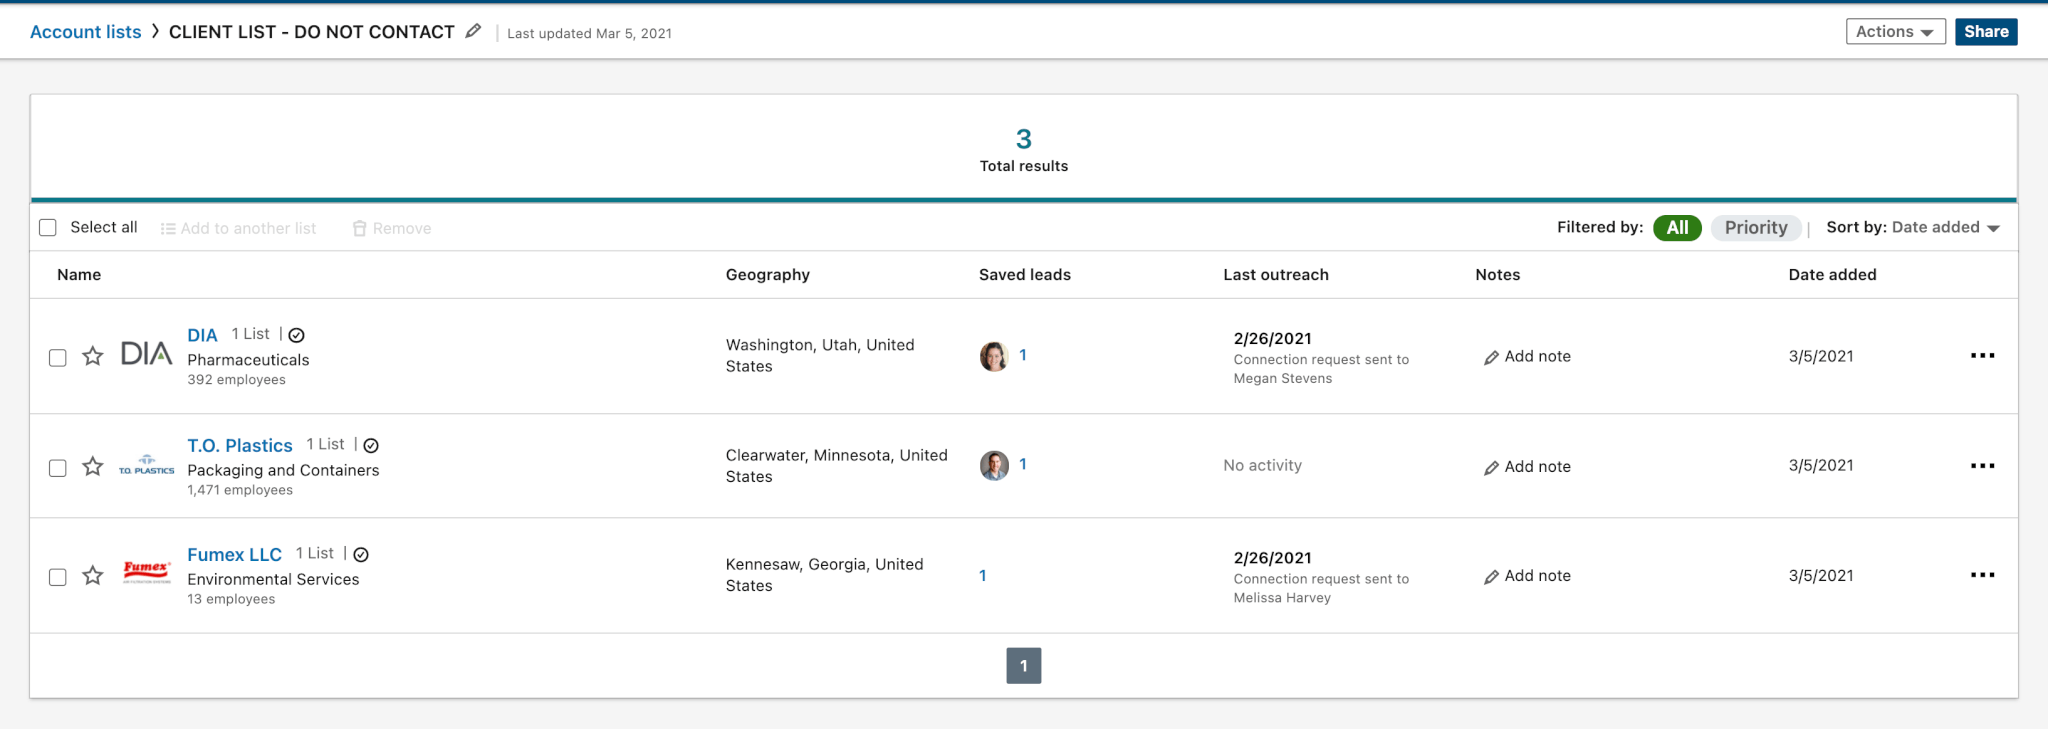 Linkedin Import Accounts As CSV - reviewing the imported accounts